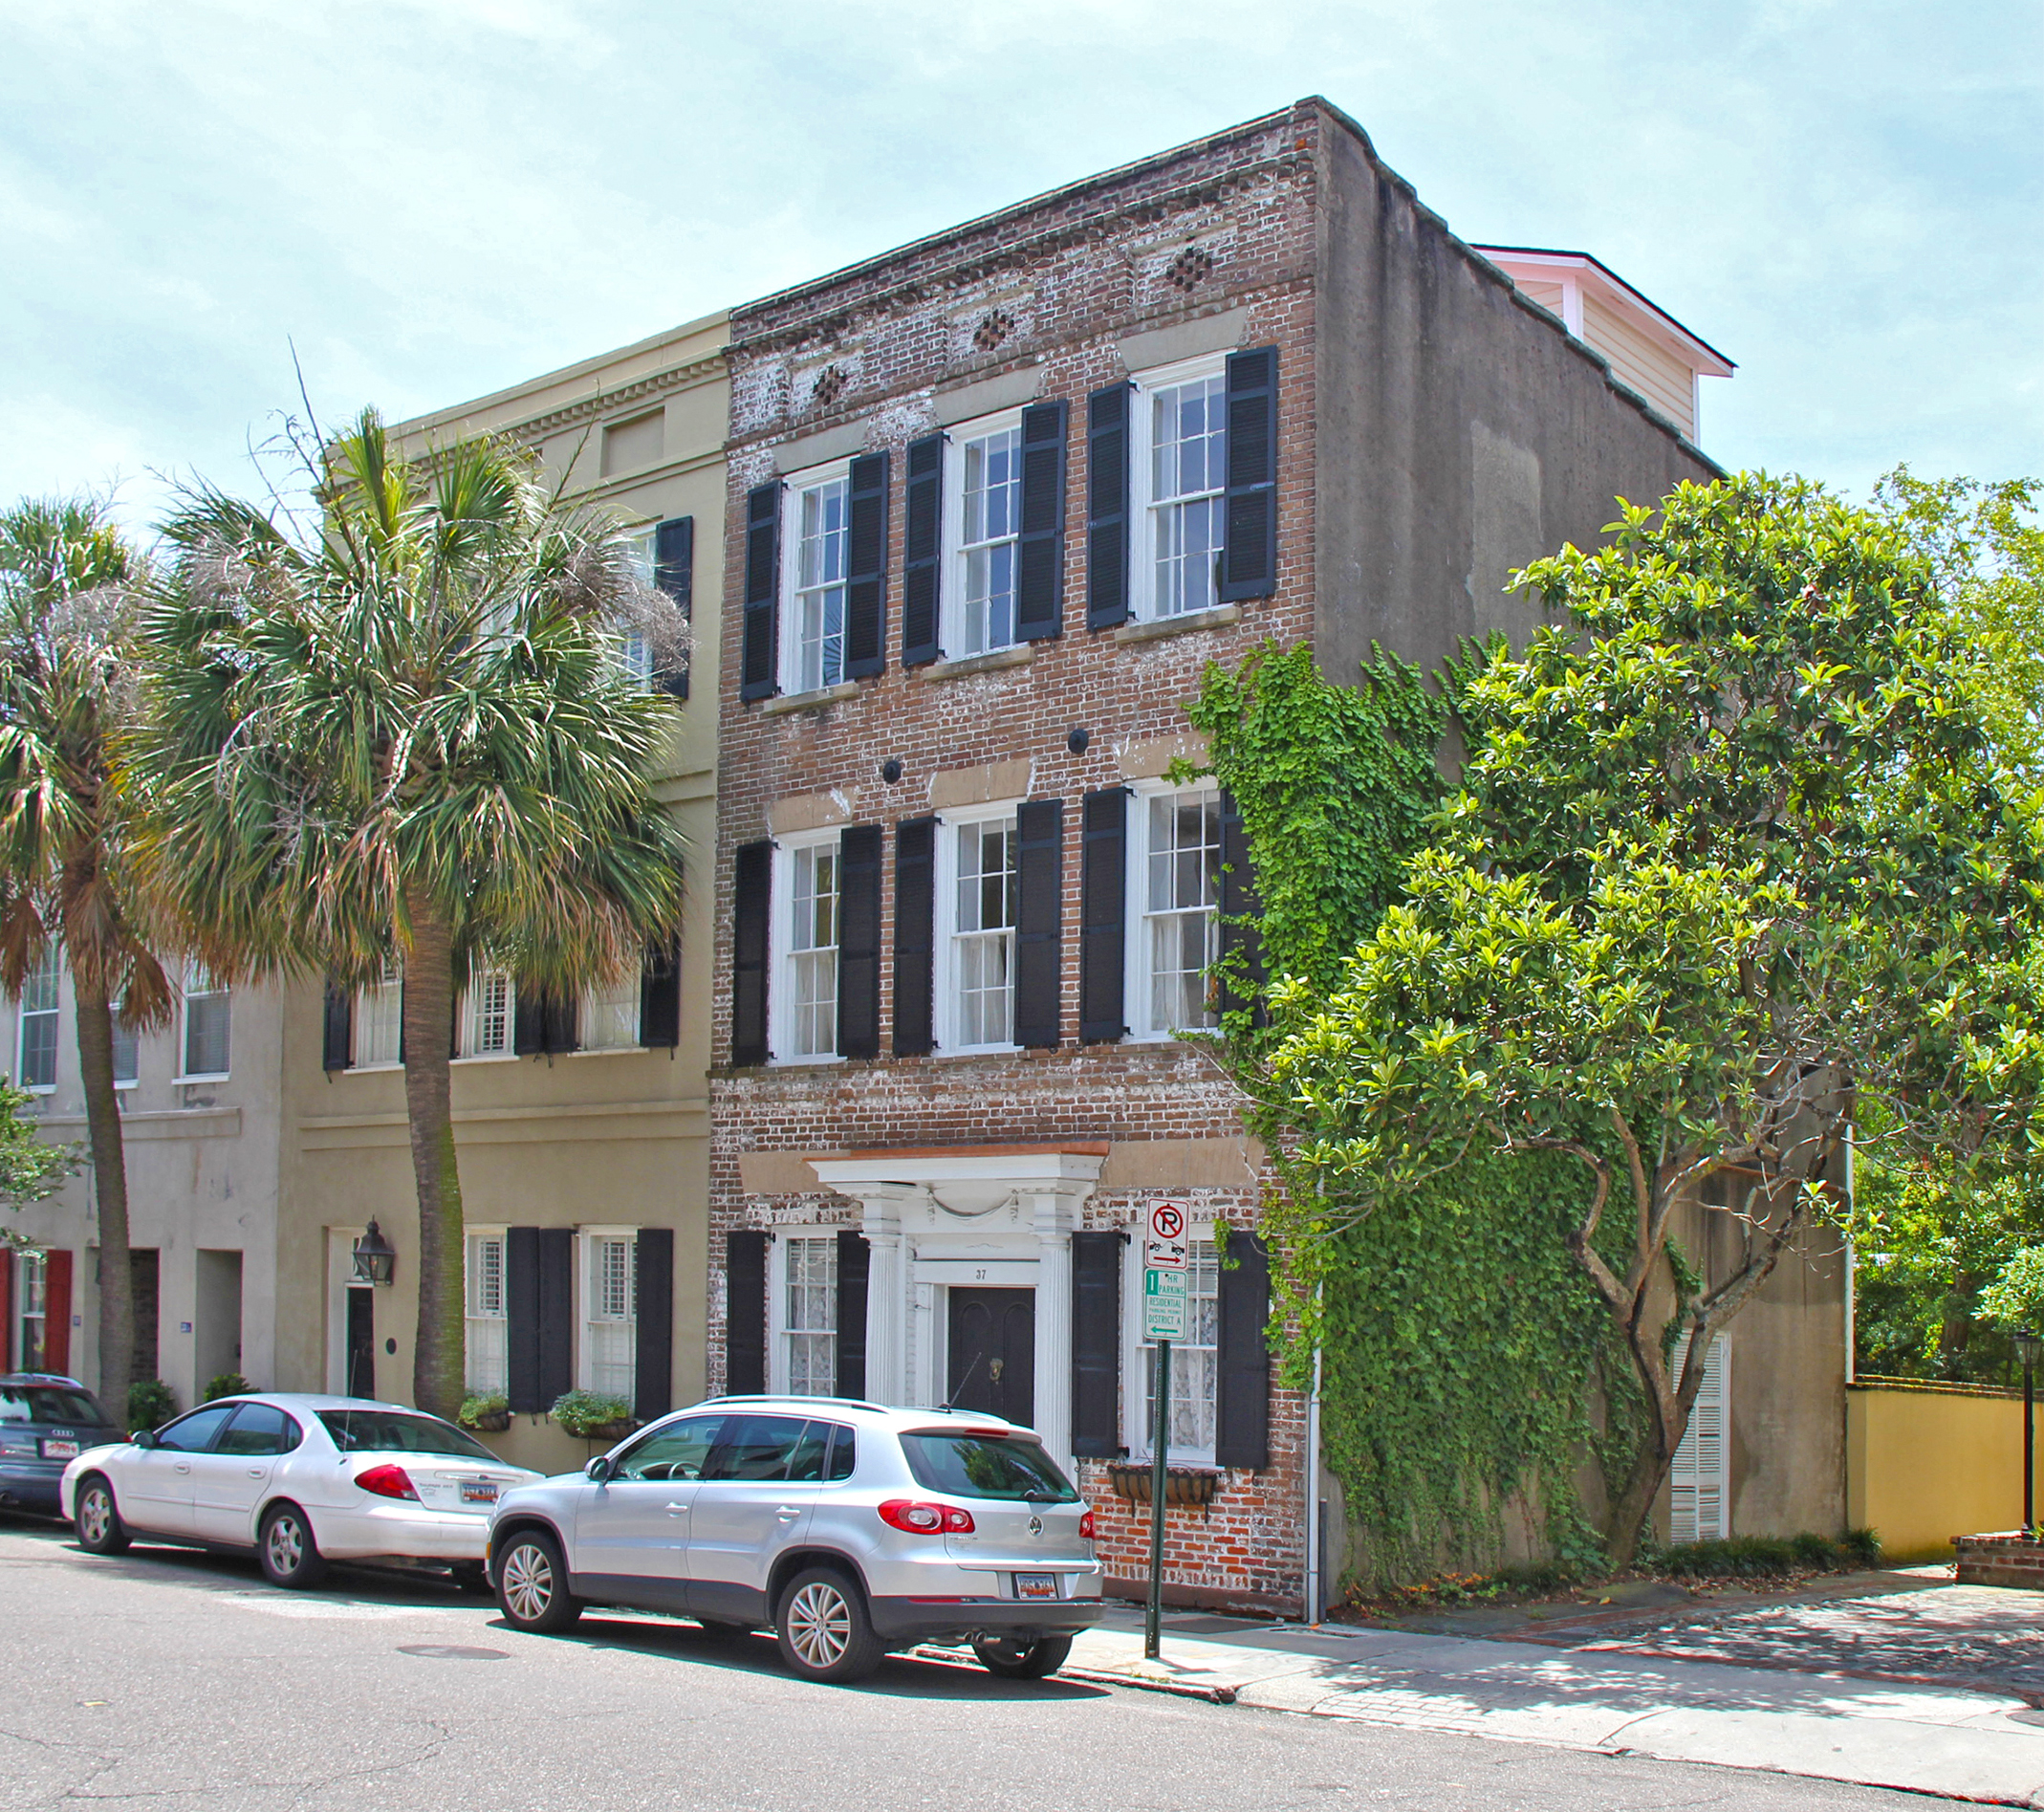 Townhouse for Sale at 37 State 37 State Street French Quarter, Charleston, South Carolina, 29401 United States